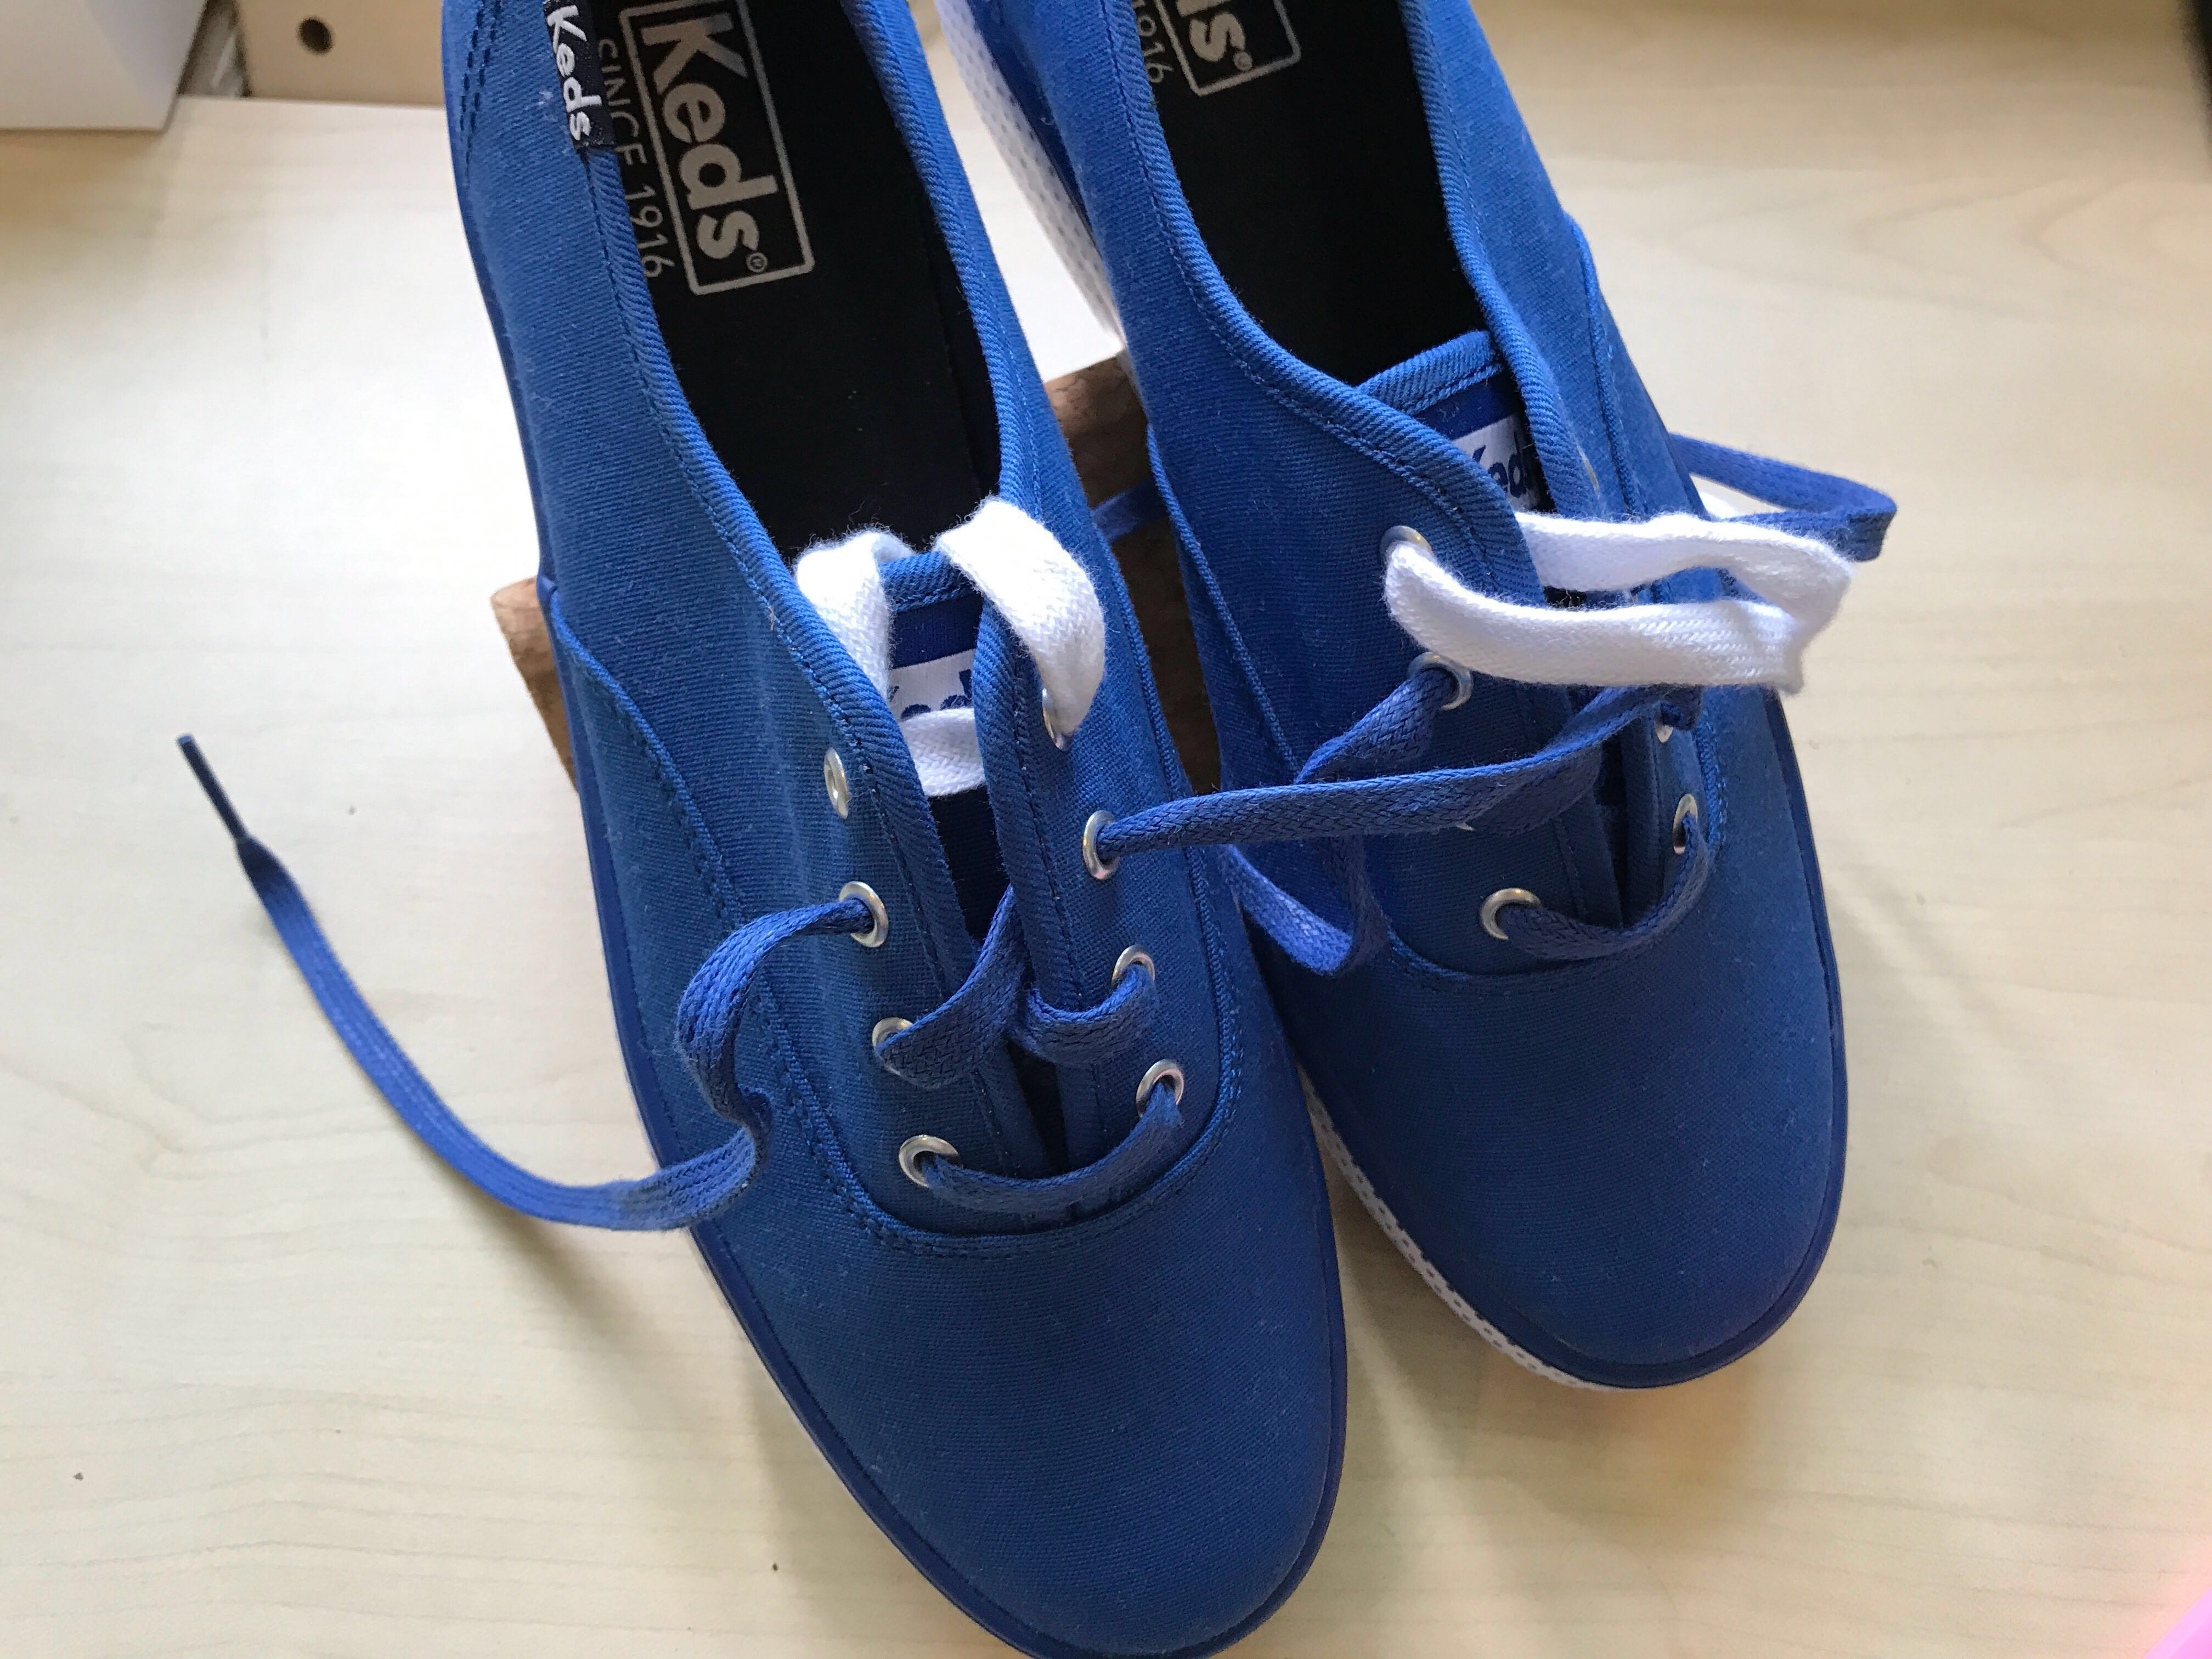 f4116b8ccca5 Authentic Keds (SIZE 39), Women's Fashion, Shoes, Sneakers on Carousell